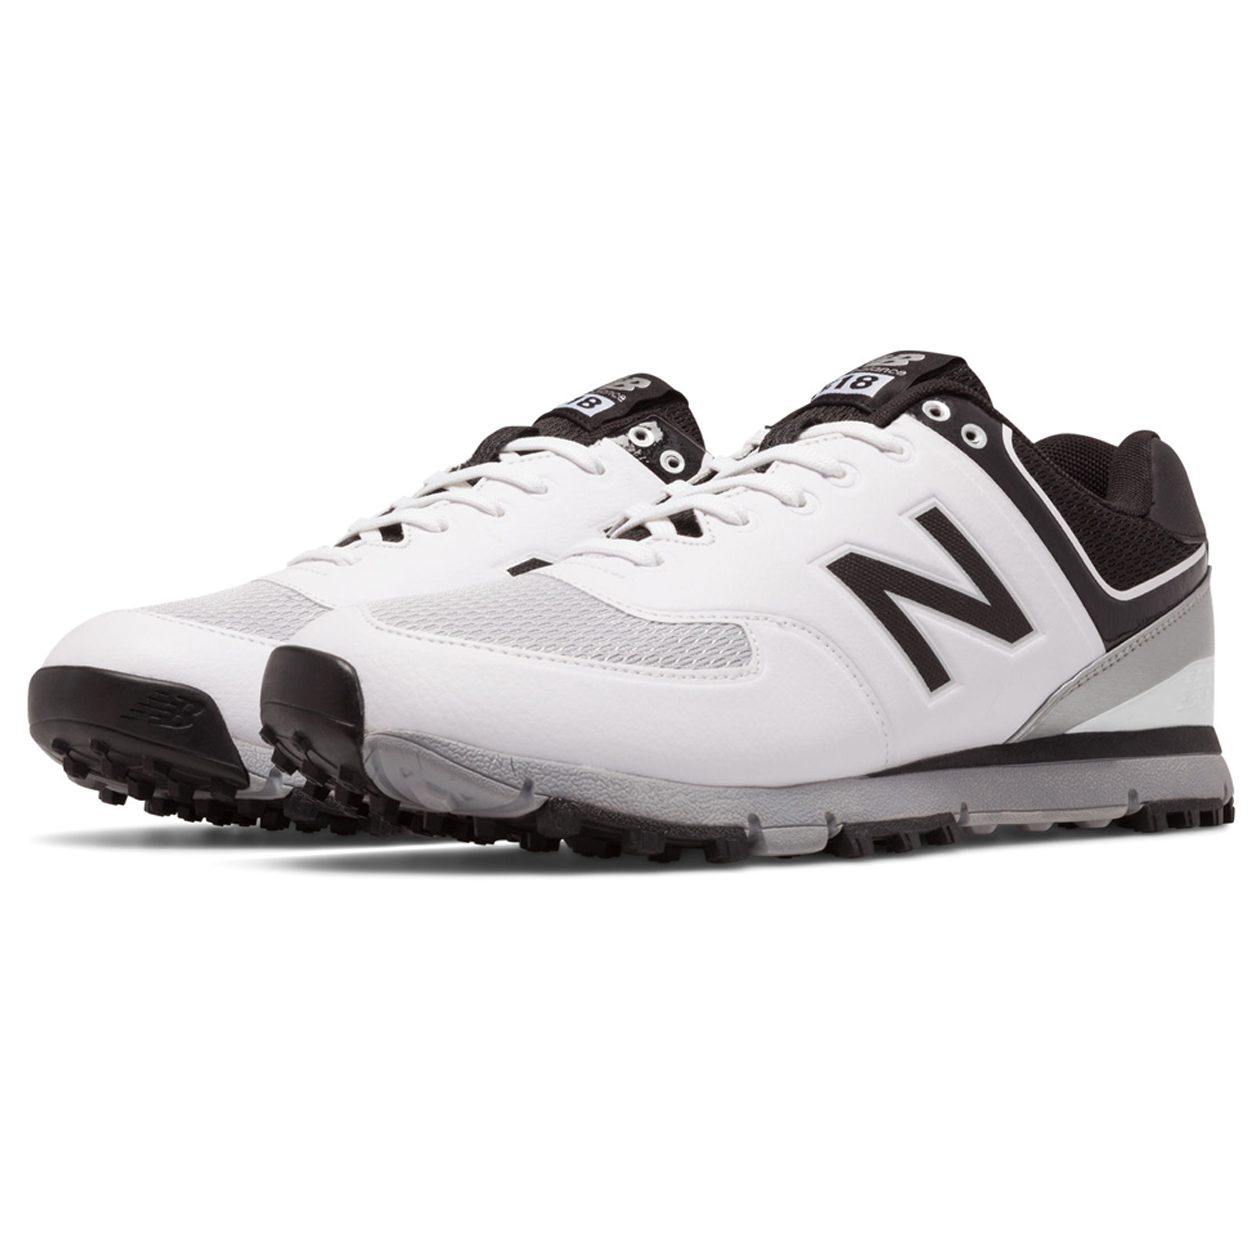 New-Balance-Men-039-s-NBG518-Spikeless-Golf-Shoe-Brand-New thumbnail 13